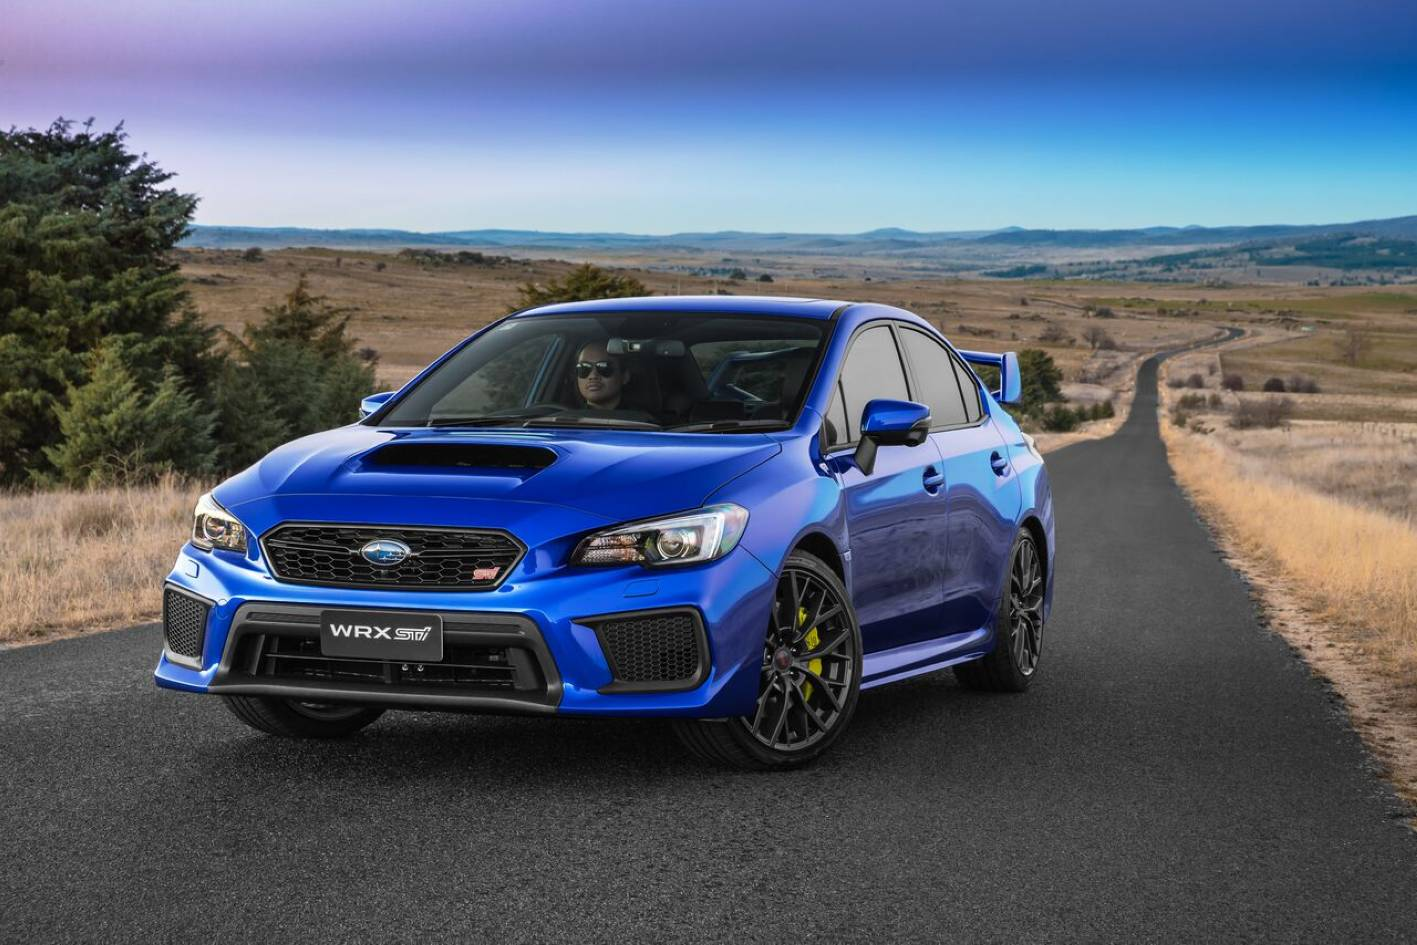 Watch furthermore Updated 2018 Subaru Wrx Wrx Sti Land New Spec R Tops Range further Aftermarket Accessories For Polaris Slingshot furthermore 60728294945281828 additionally TRX21416B. on t rex car interior